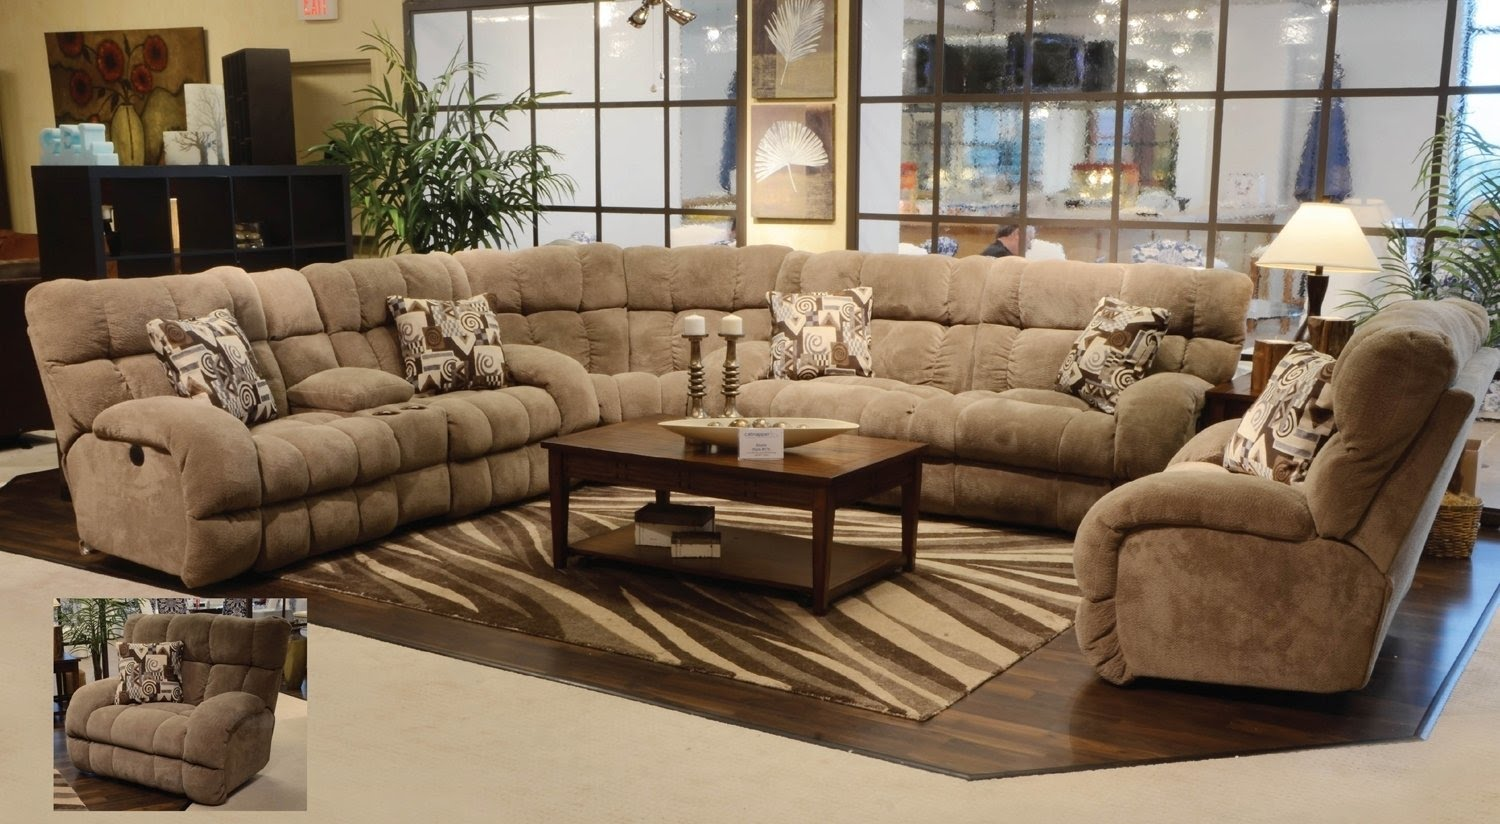 extra large sectional sofa visual hunt rh visualhunt com sectional sofas for large spaces sectional sofas extra large